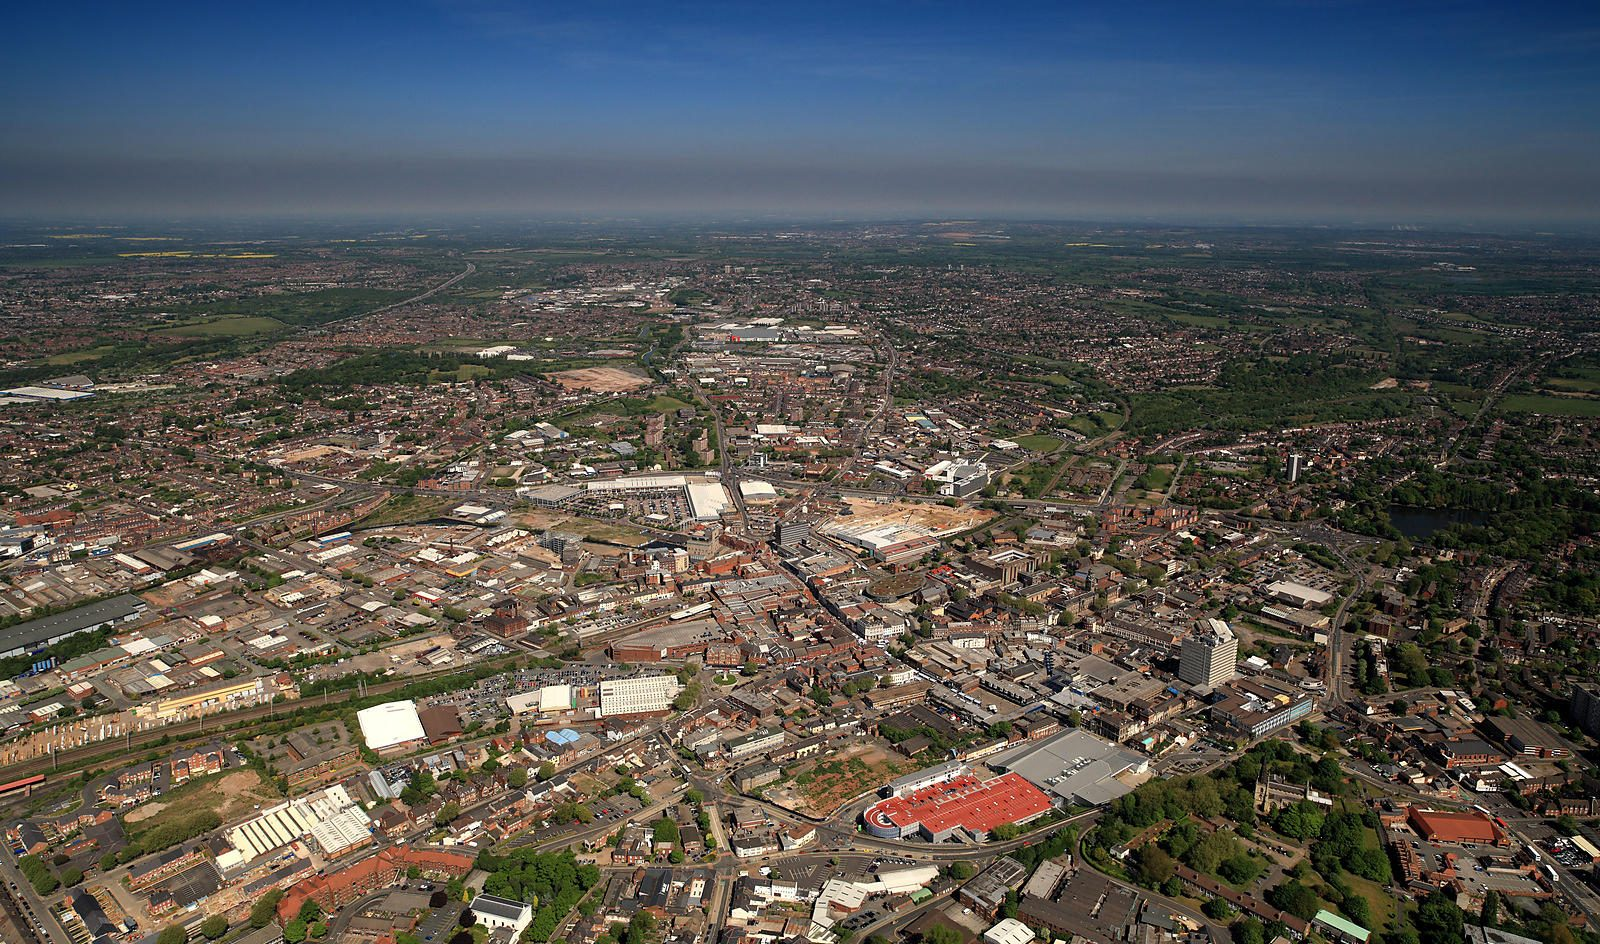 Panoramic aerial photograph of West Midlands